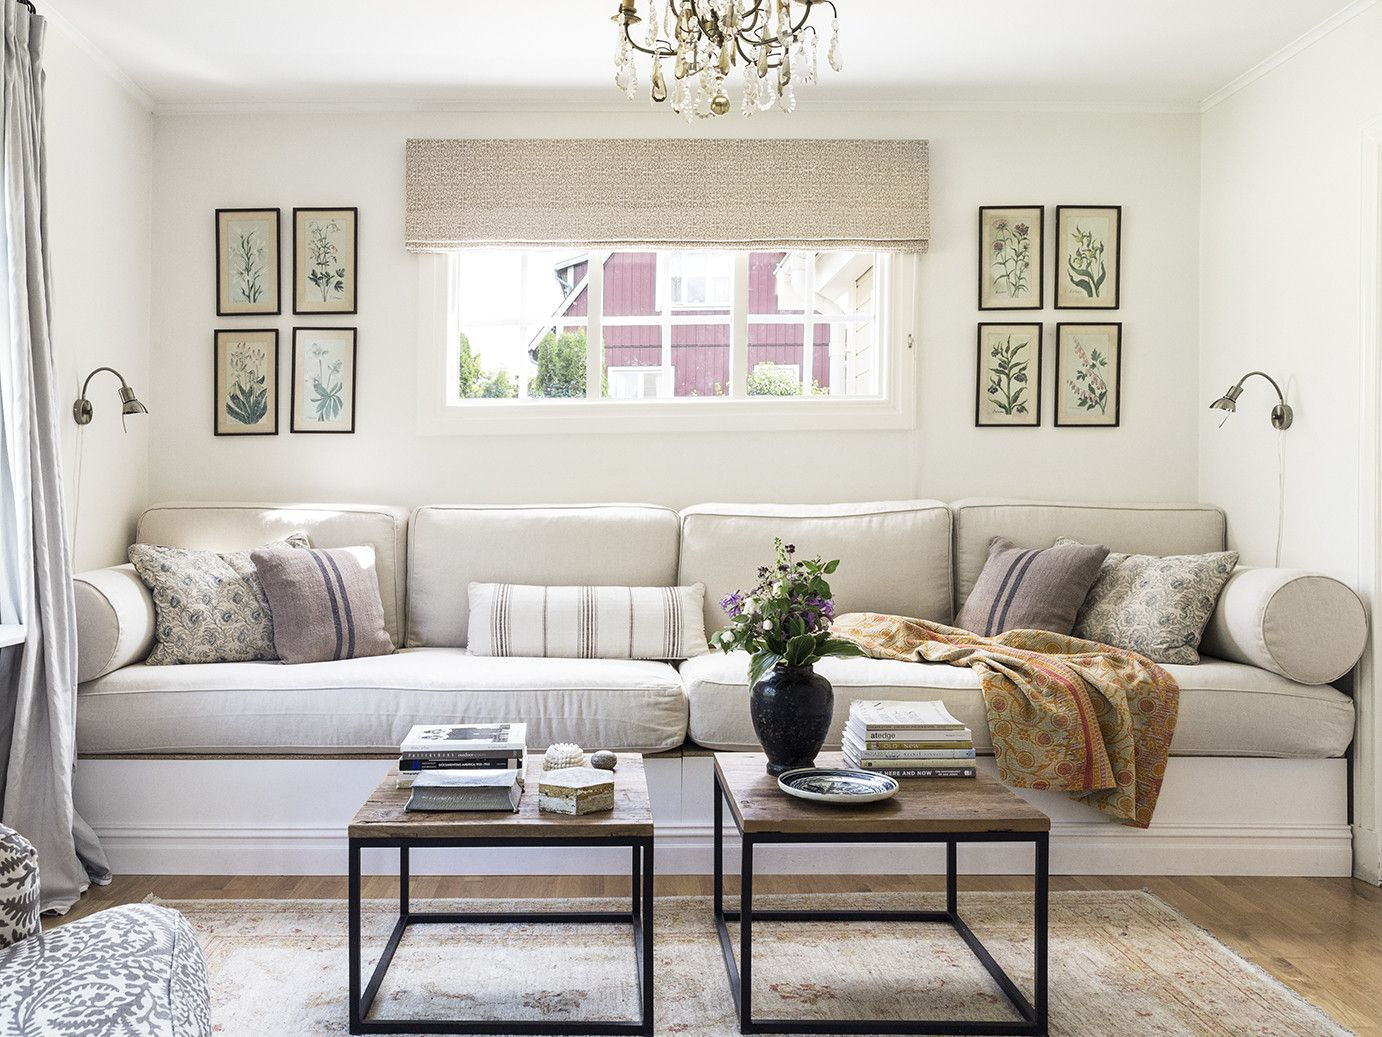 Contemporary Traditional Living Room: Two Small Tables In Front Of Window  Spacey Couch.